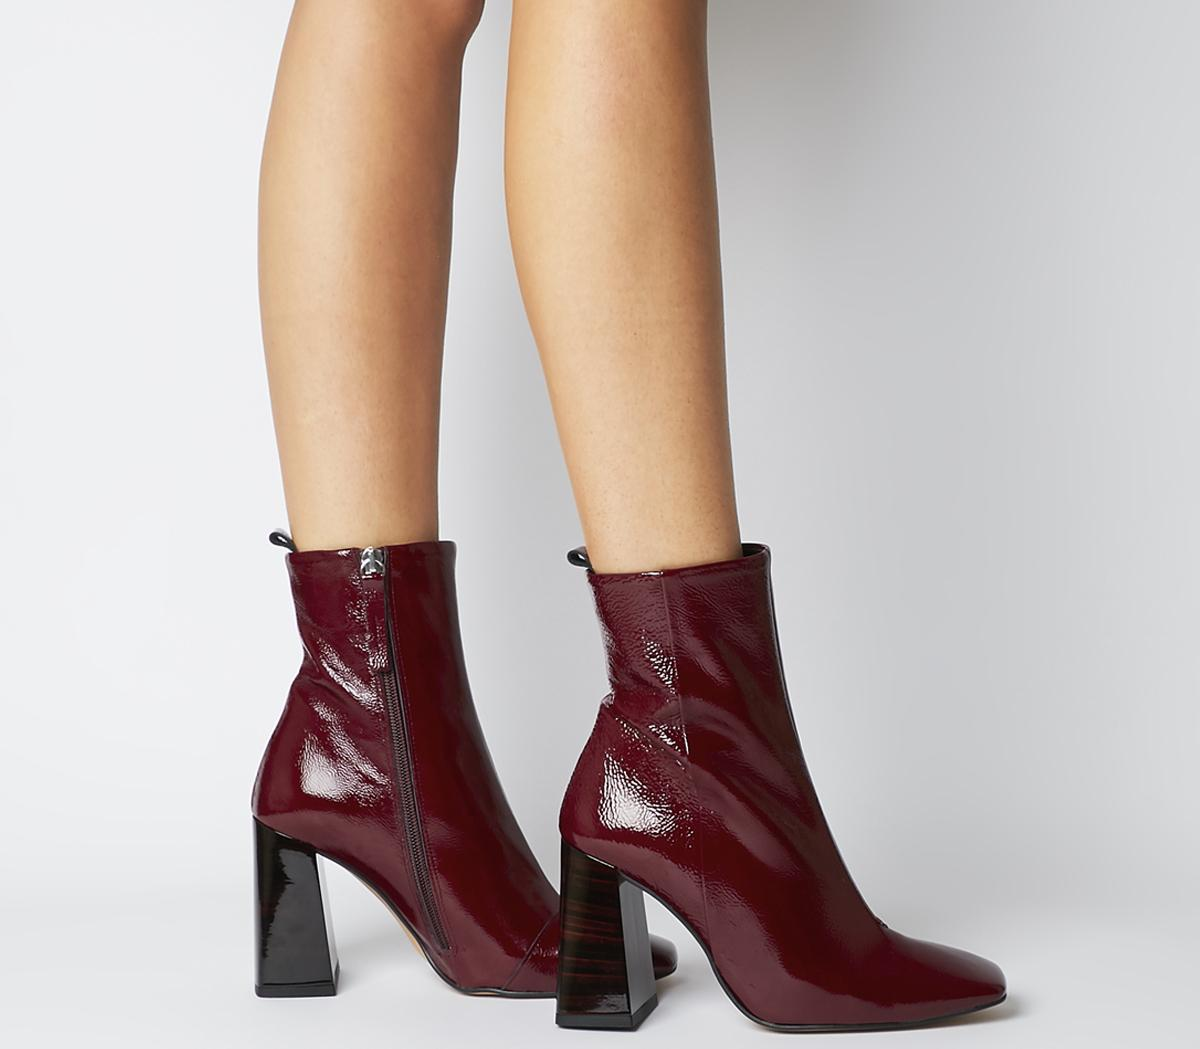 All Together Square Toe Block Heels